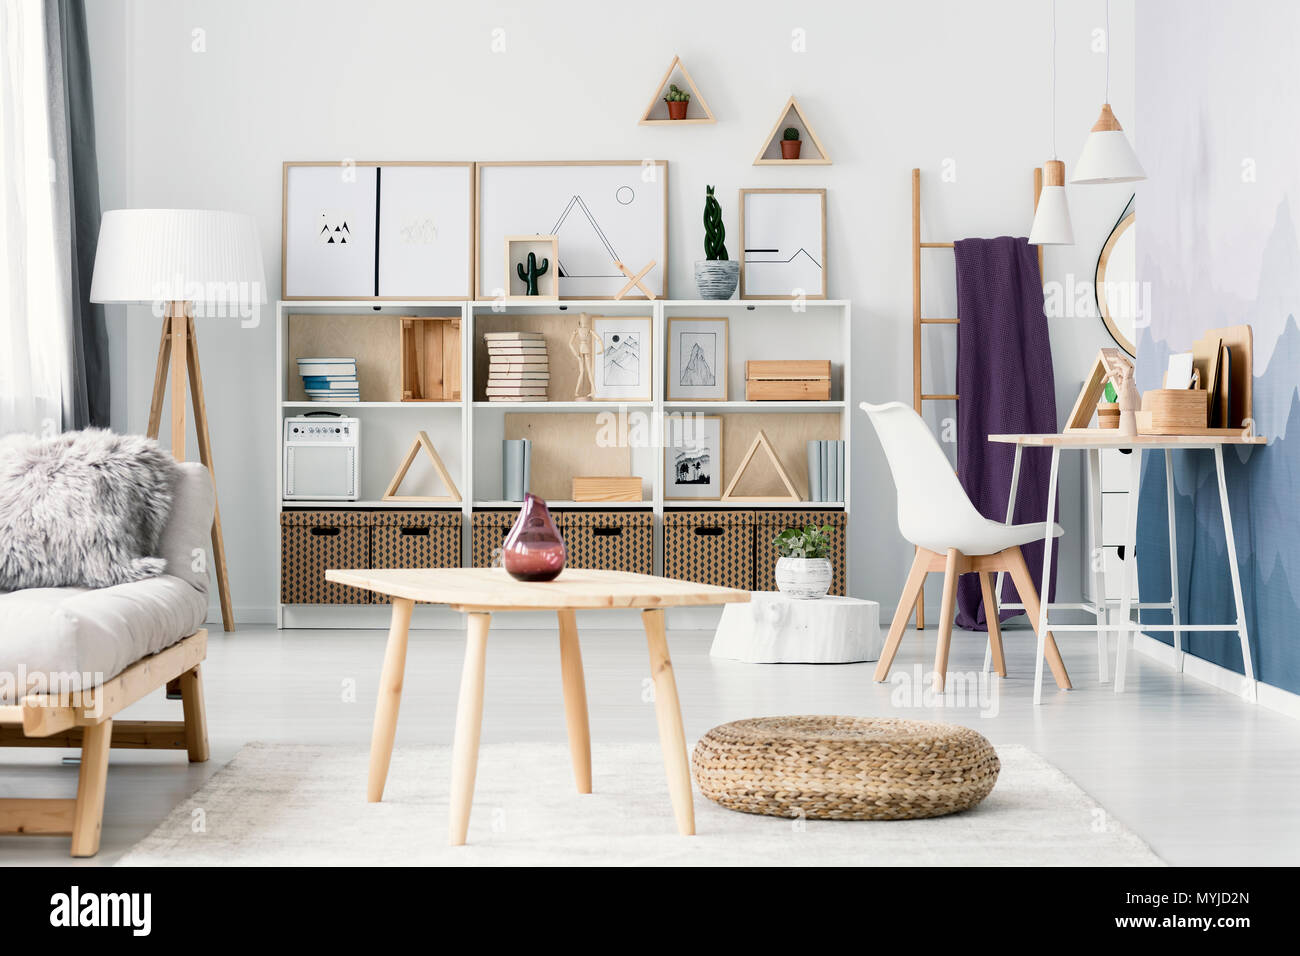 Pouf next to a wooden table in open space interior with white chair at desk and posters on the wall - Stock Image